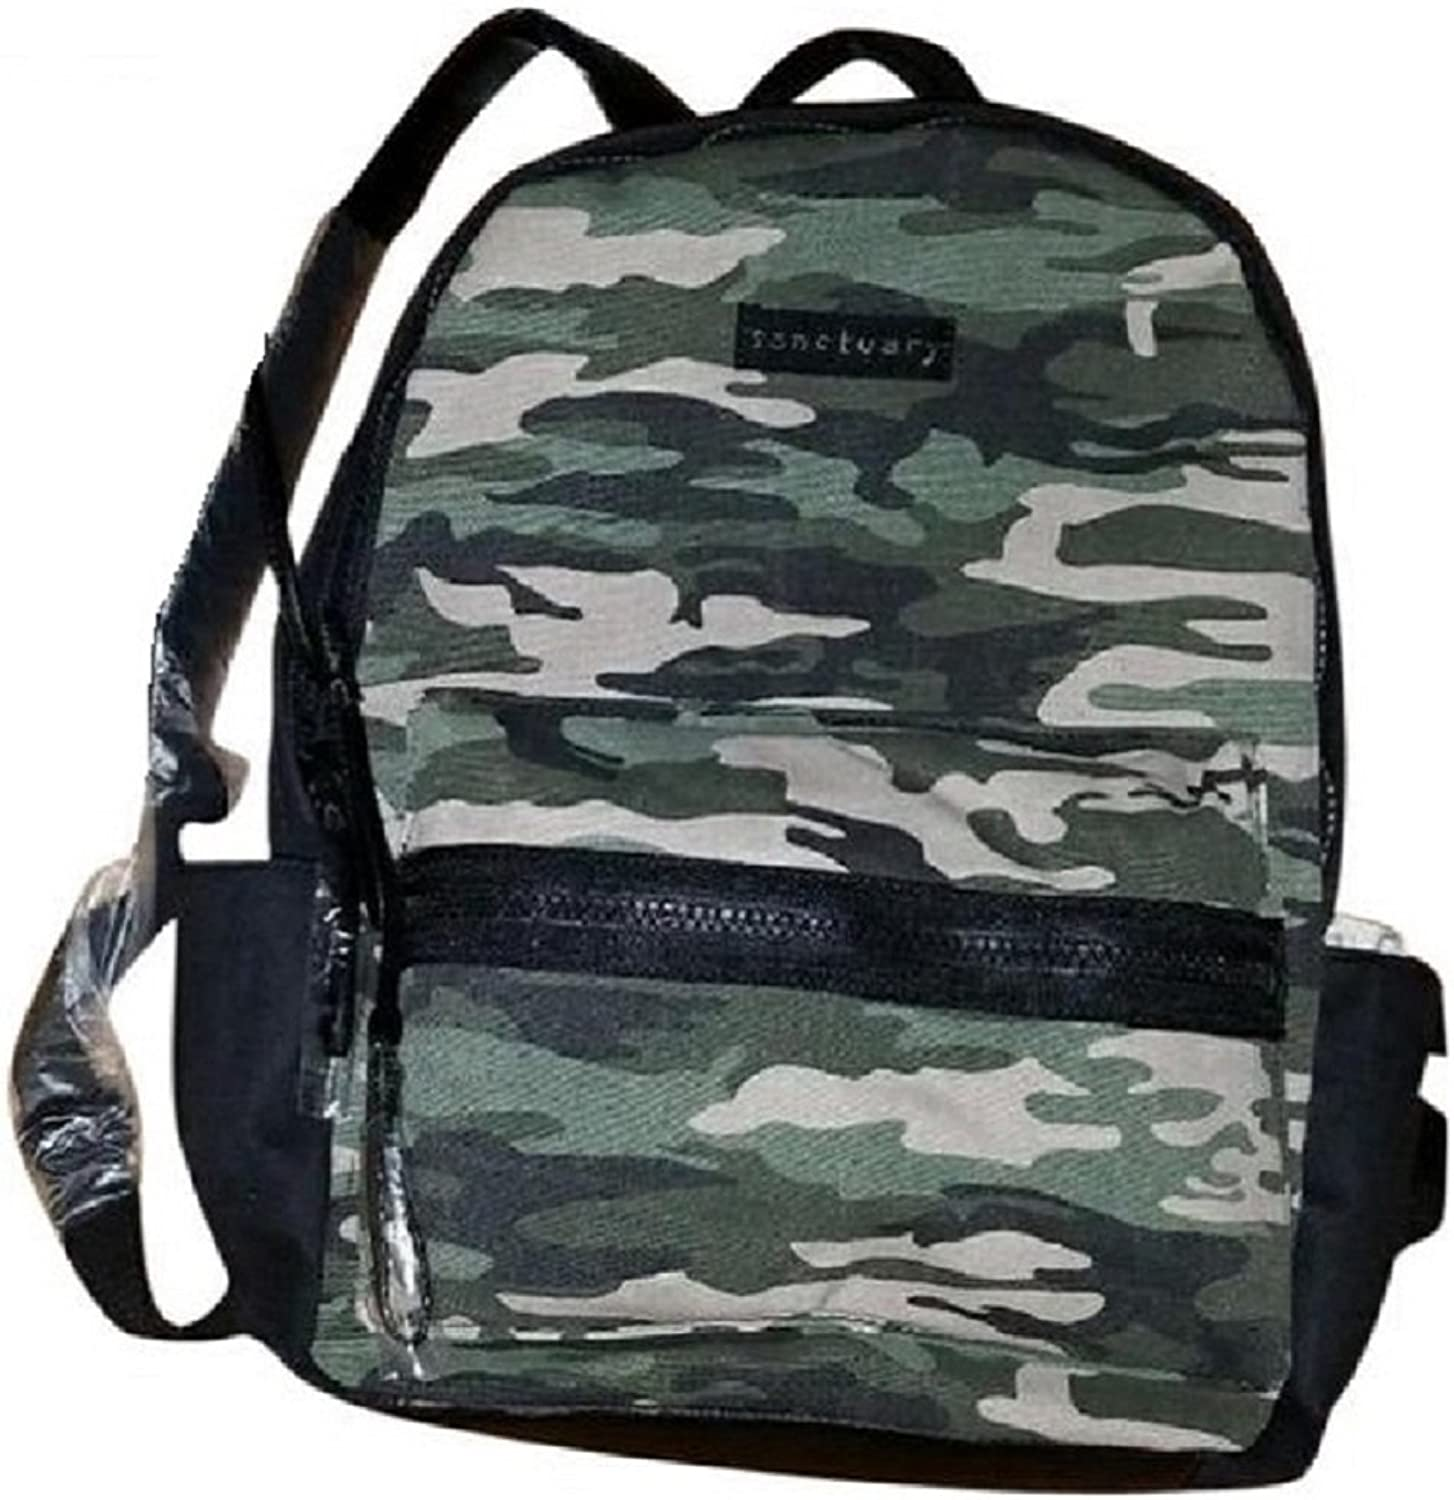 Sanctuary Handbags Downtown Backpack Camo Black